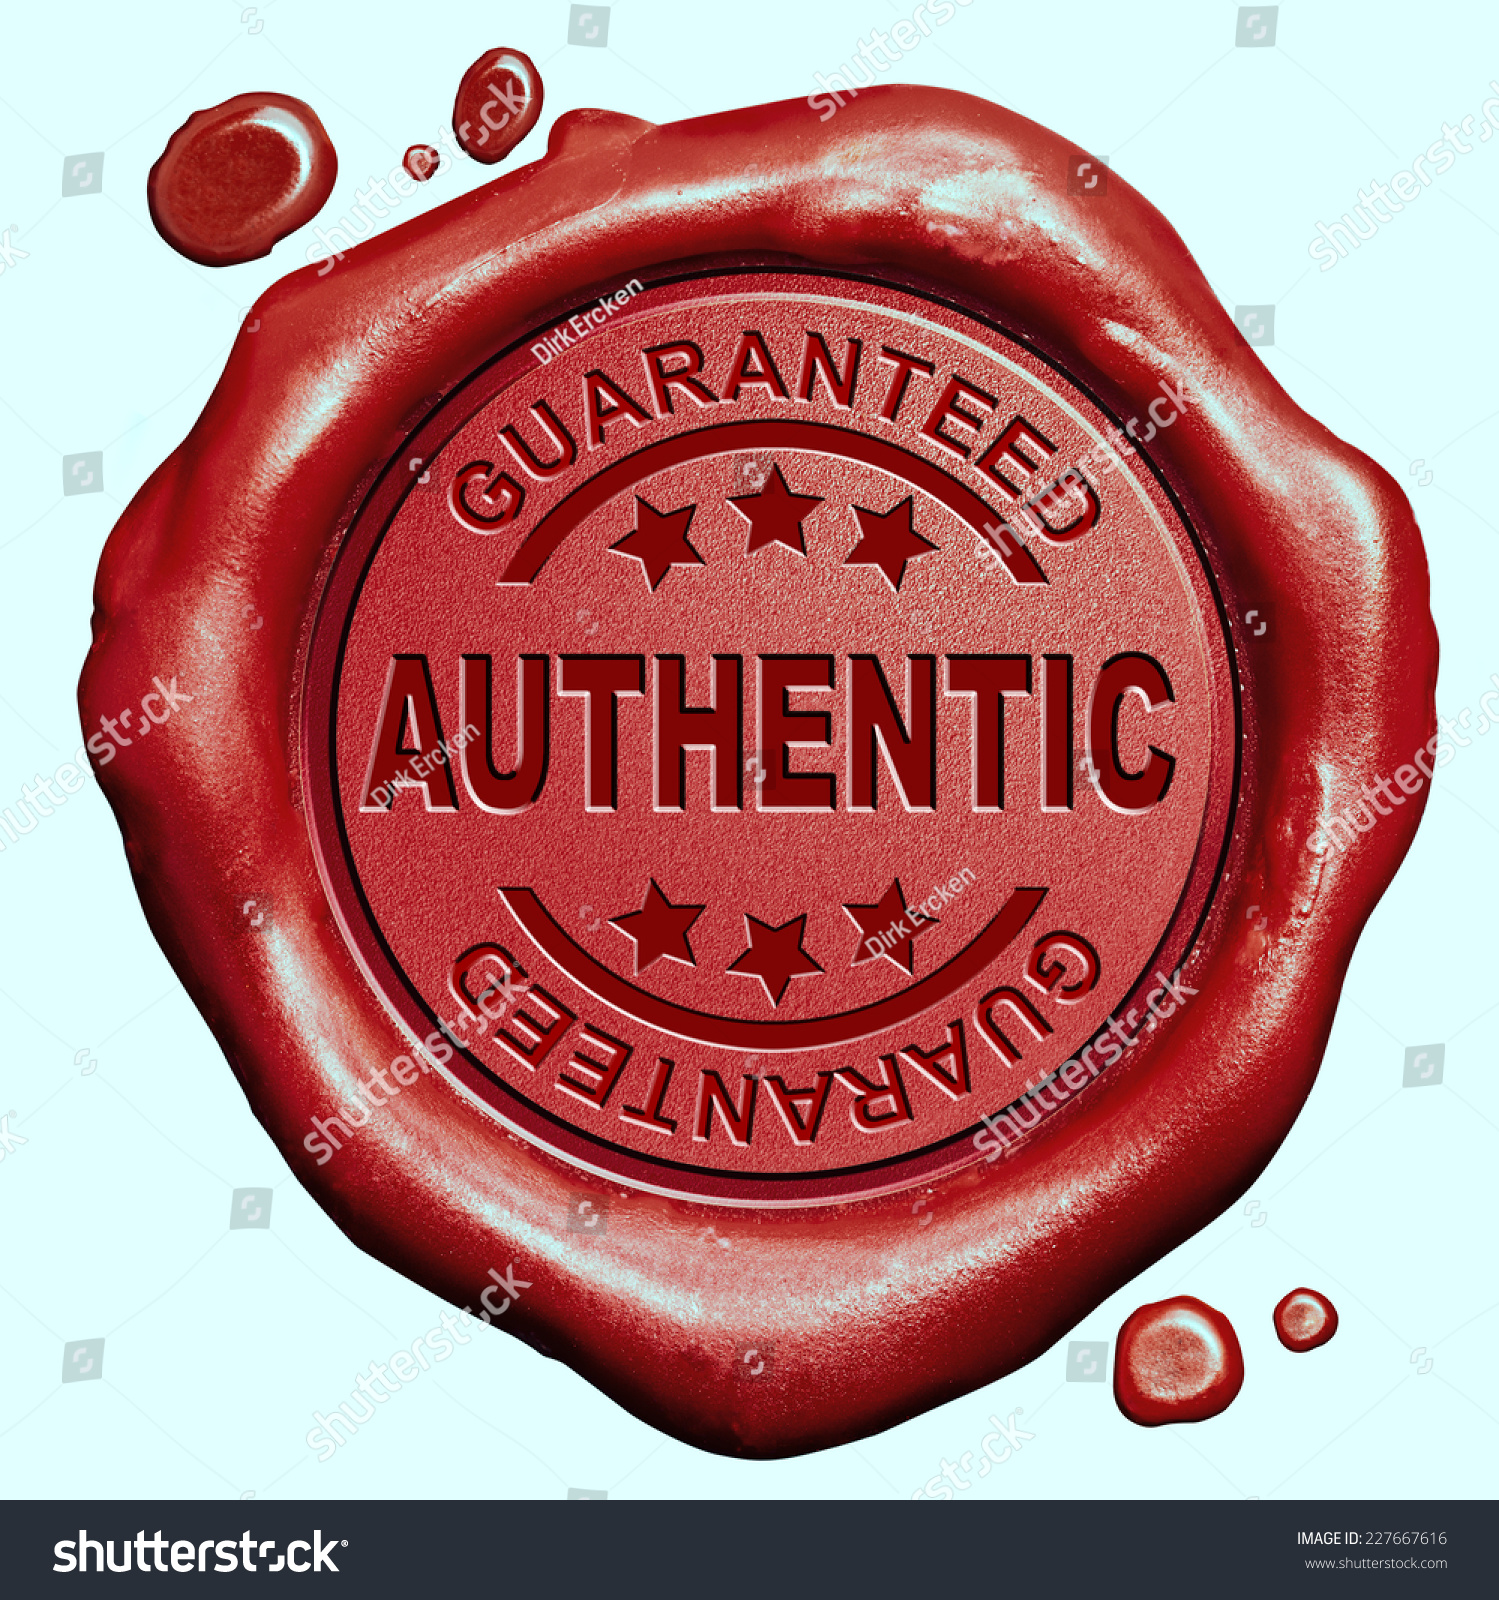 Authentic Product Quality Label Authenticity Guaranteed Stock ...